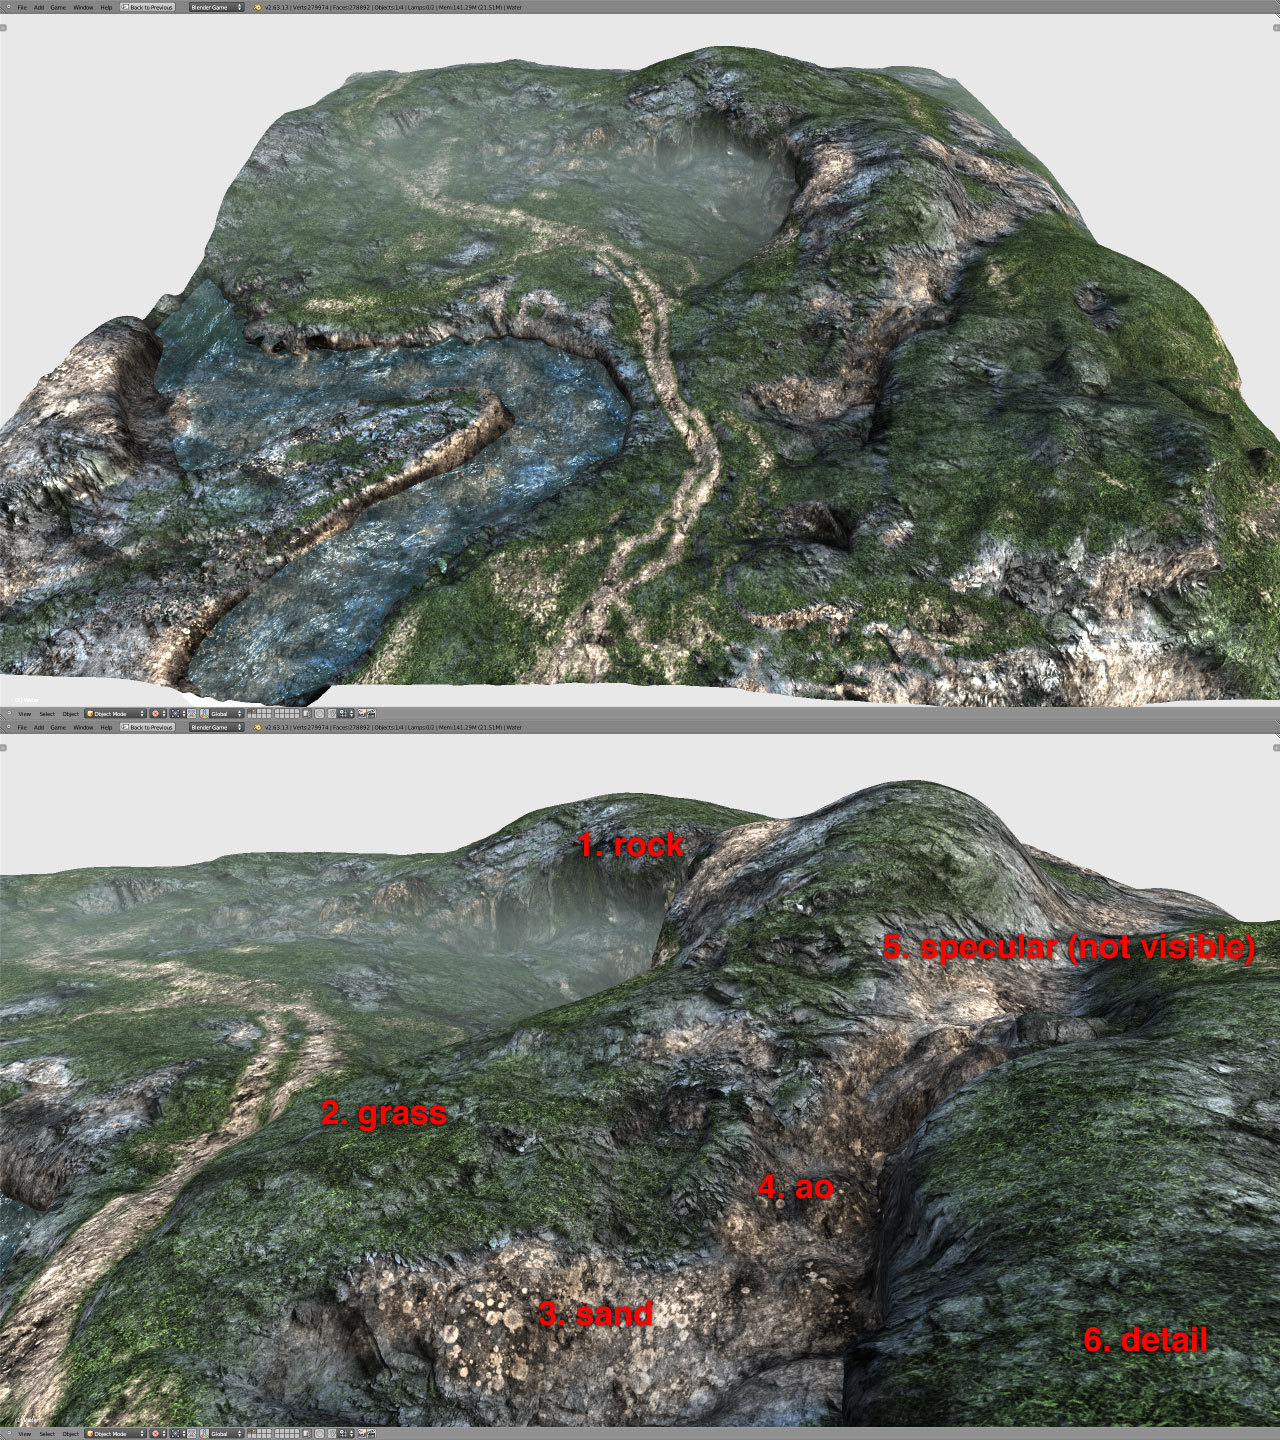 Uber efficient use of textures for terrain rendering  Traditionally, for a terrain this size, one will need an 8k texture at minimum. The landscape is rendered using a single 2028x2048 texture and one 512x512 texture.  This post is inspired by Andrew Maximov's article. In which he explores the limitations of traditional diffuse colour textures, and proposes a shader based semi-procedural texturing approach.  This is that method in Blender.  Download the Blend file here Here is the texture use break-down  Combined.tga R Channel: Dirt texture Combined.tga G Channel: Grass texture Combined.tga B Channel: Rock texture Mask.tga R Channel: Gradient Map (used to control which of the textures (Dirt, Grass, Rock) to use) Mask.tga G Channel: Light Map (Ambient Occlusion) Mask.tga B Channel: Specular Map To see how these textures are being used, take a look at the nodal material setup in Blender.